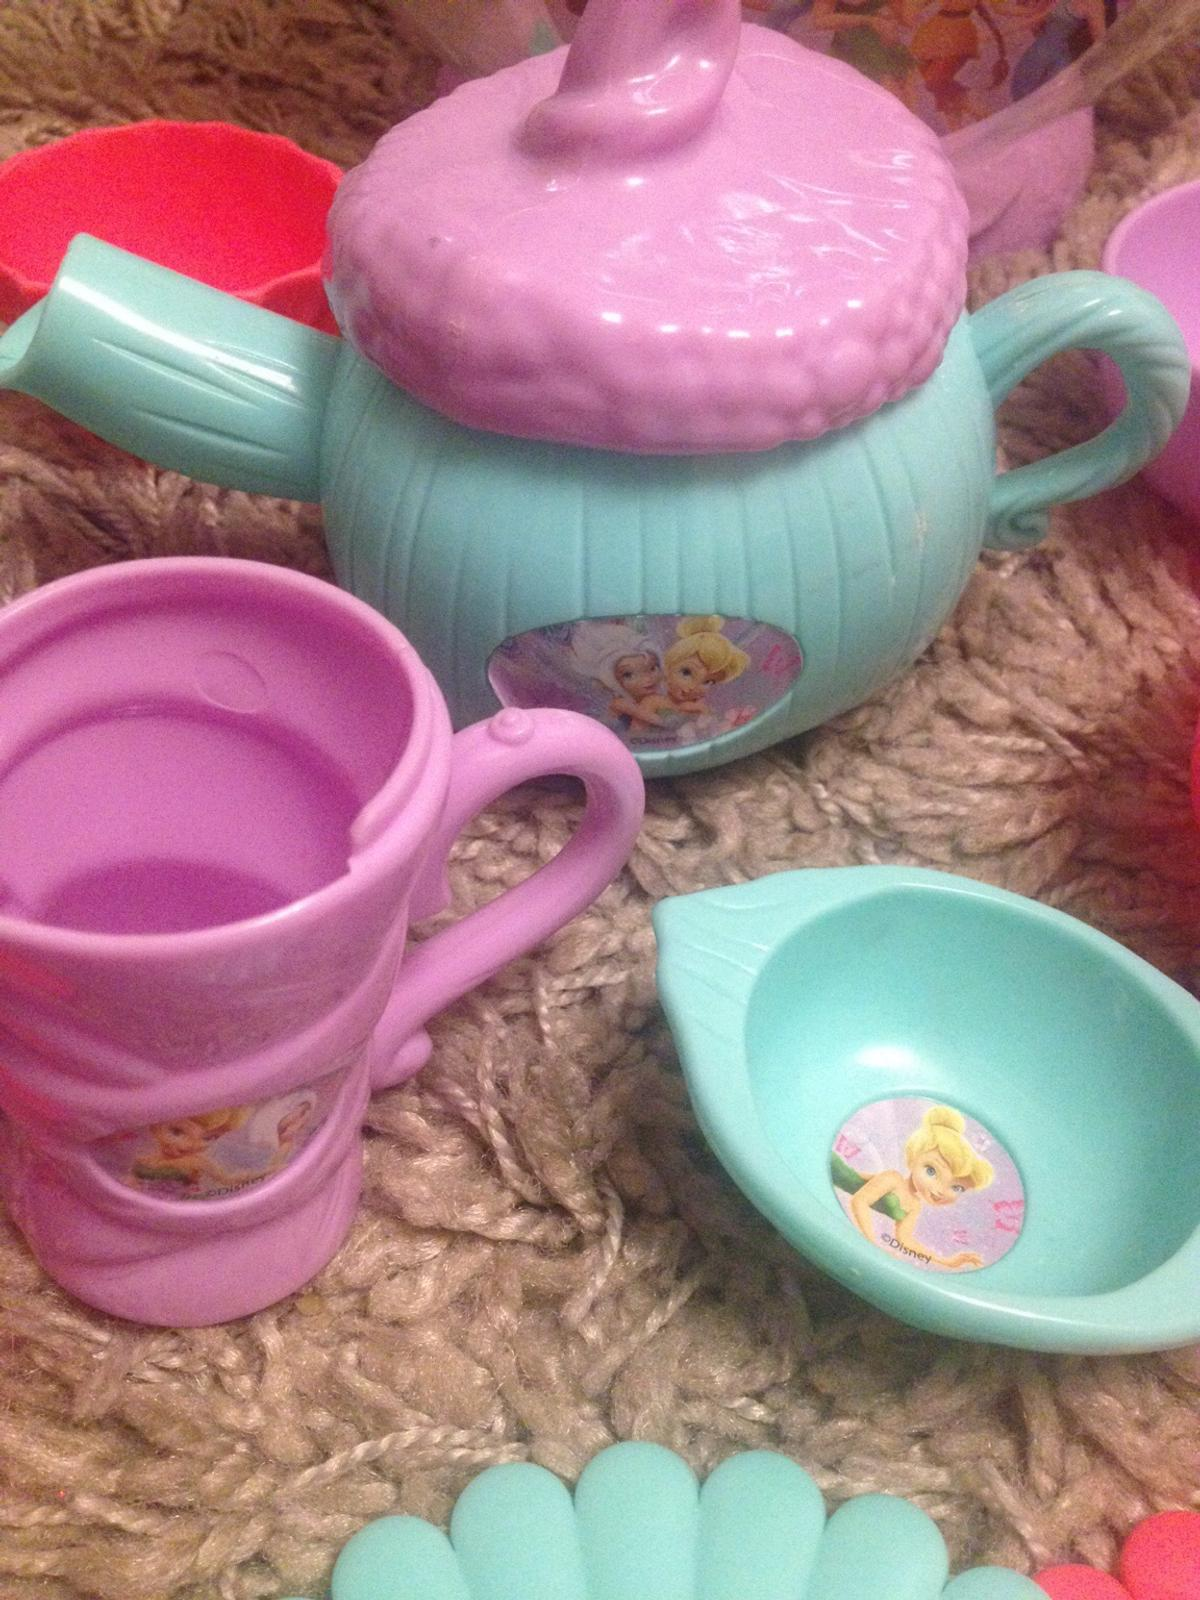 Disney store, tinkerbell and friends tea set in RM3 Romford for